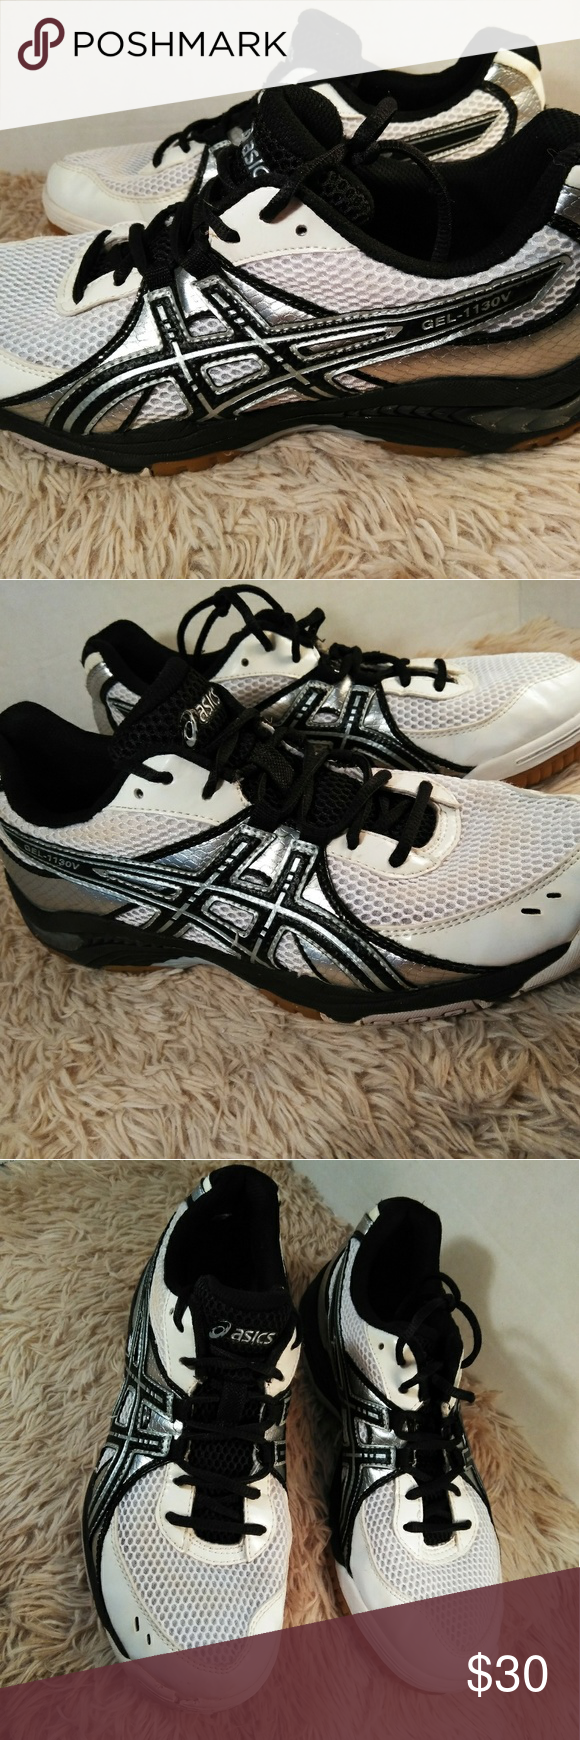 Asics Gel 1130v Volleyball Shoes Volleyball Shoes Asics Volleyball Shoes Asics Women